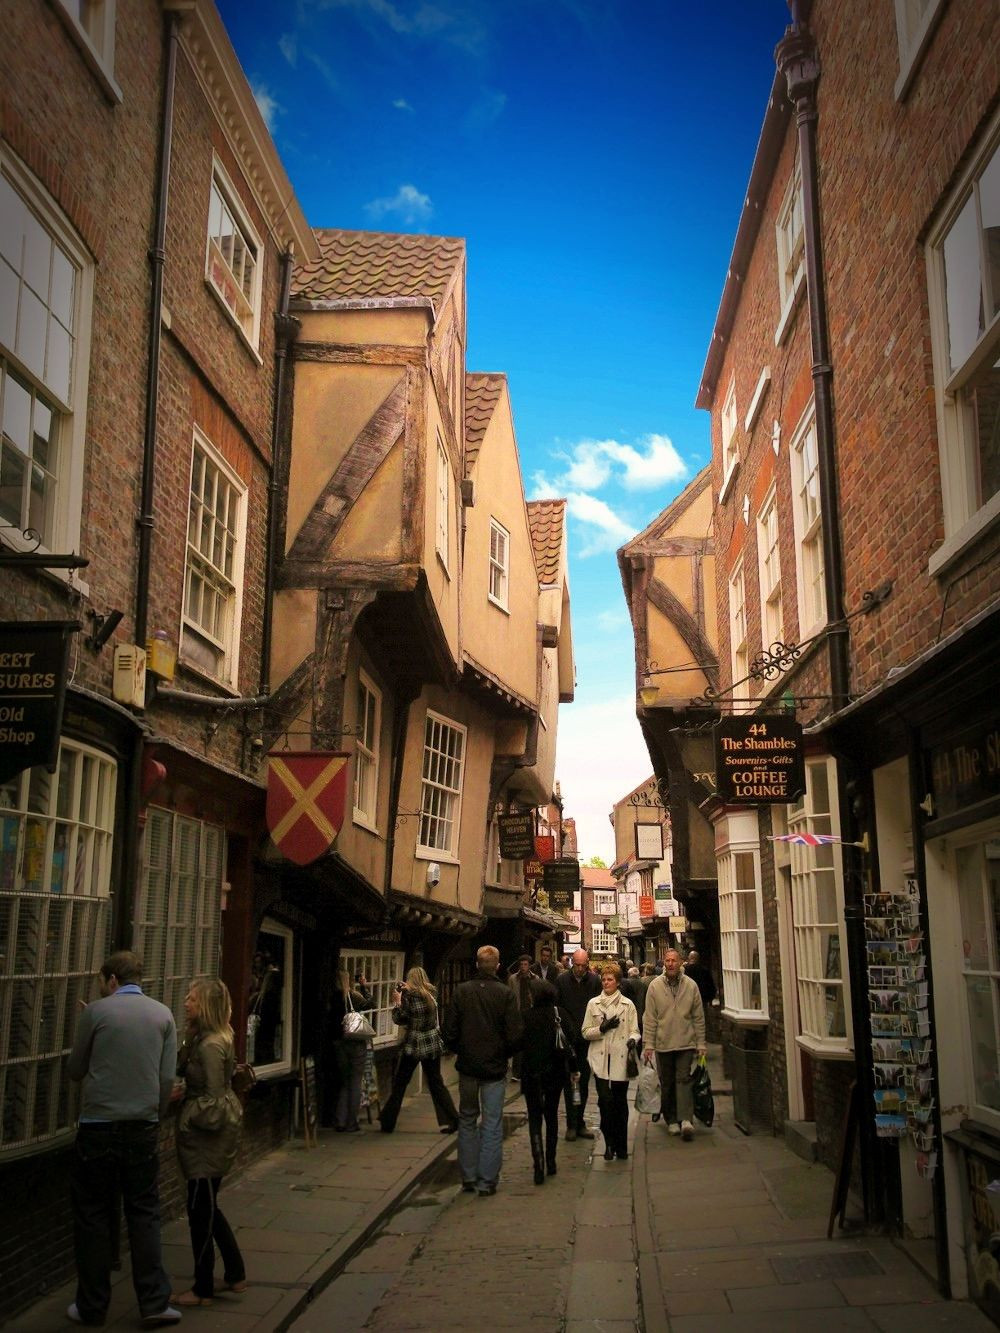 The timber-framed buildings overhang the street. Credit MuleAthon